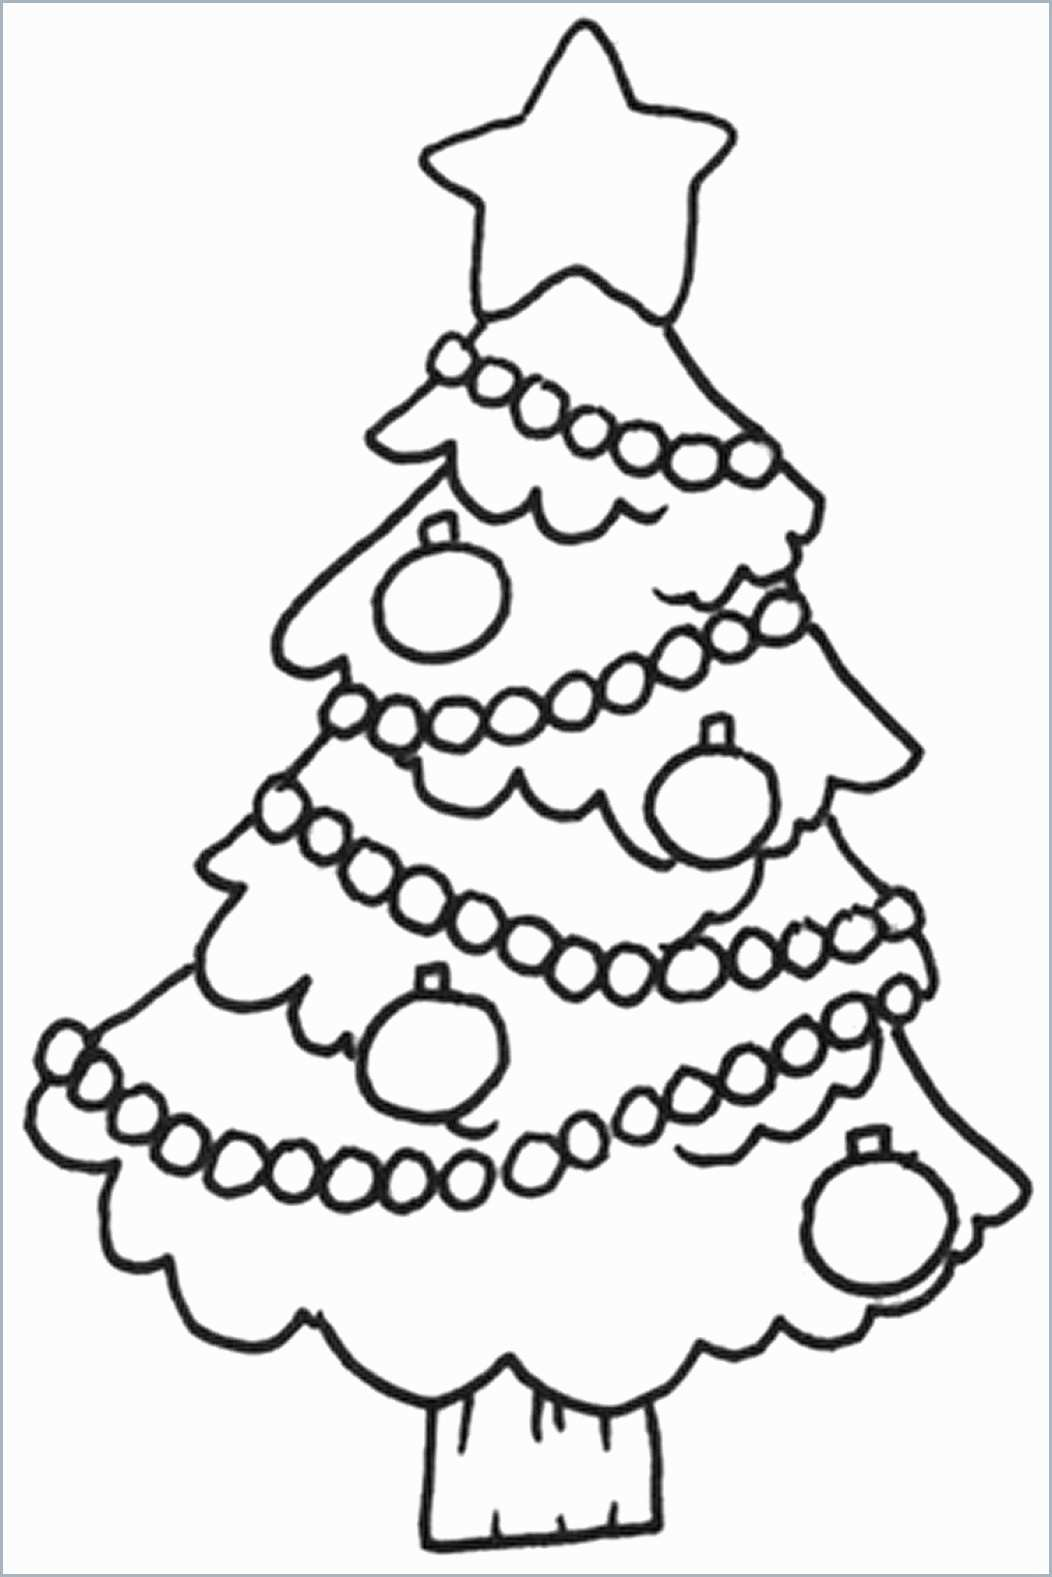 Christmas Colouring Pages To Print For Free With Printable Pleasant Elmo